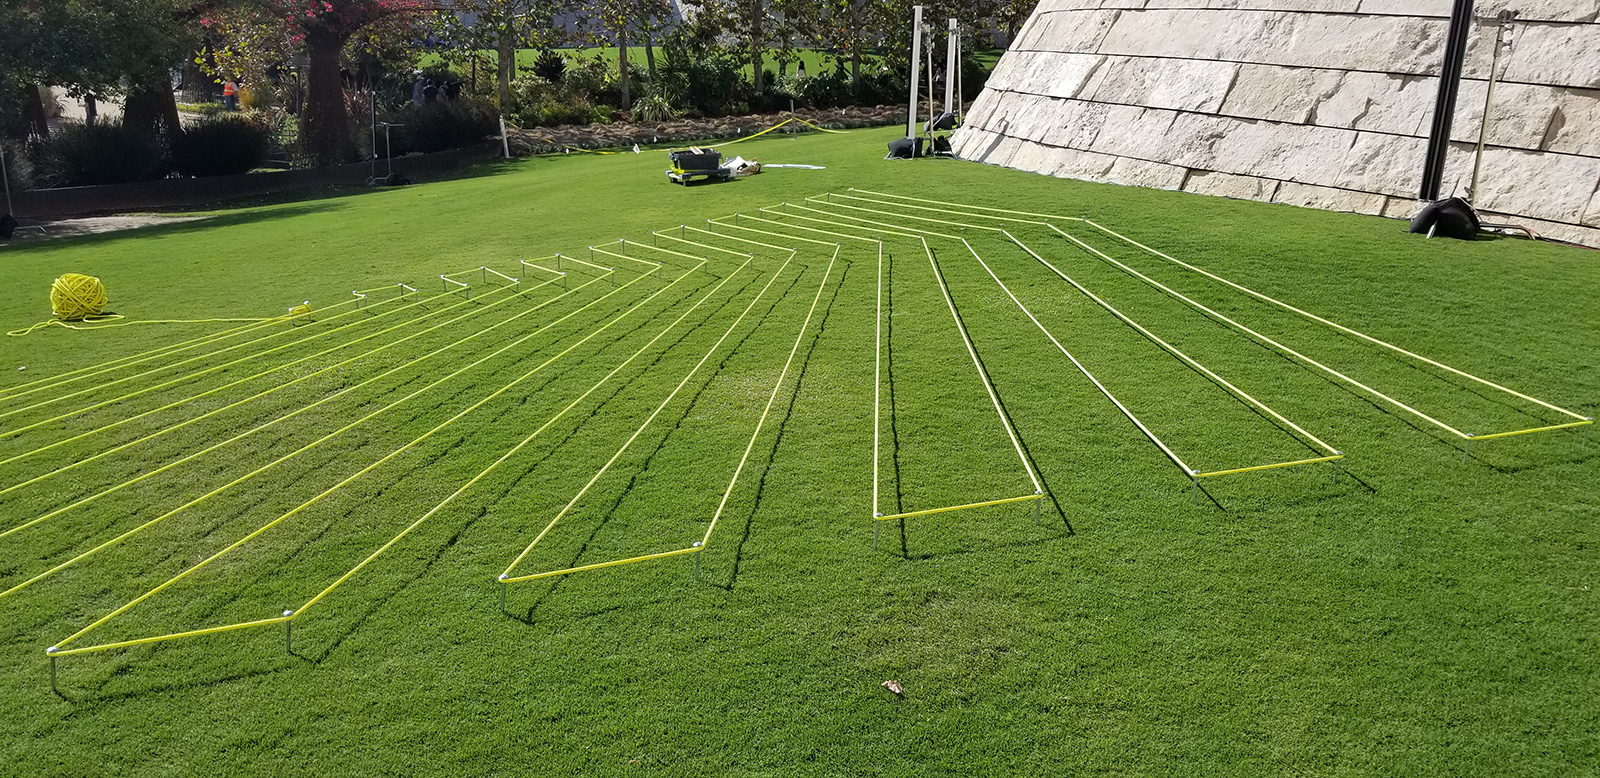 View of lines of bright yellow rope arrayed in parallel lines on a large lawn